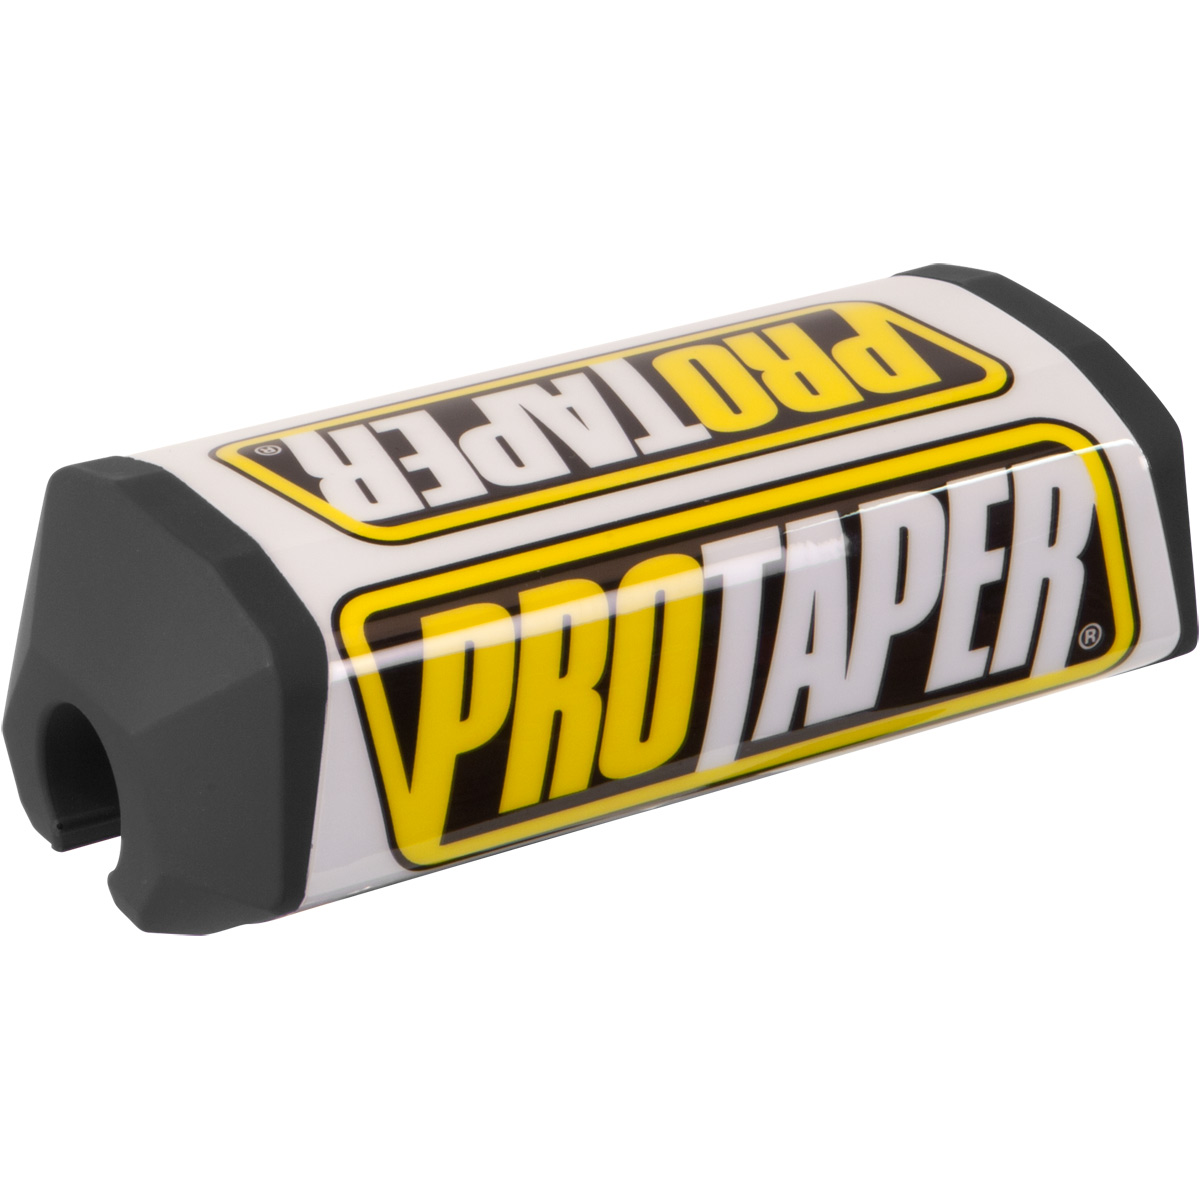 null PRO TAPER 2.0 Square Black / White